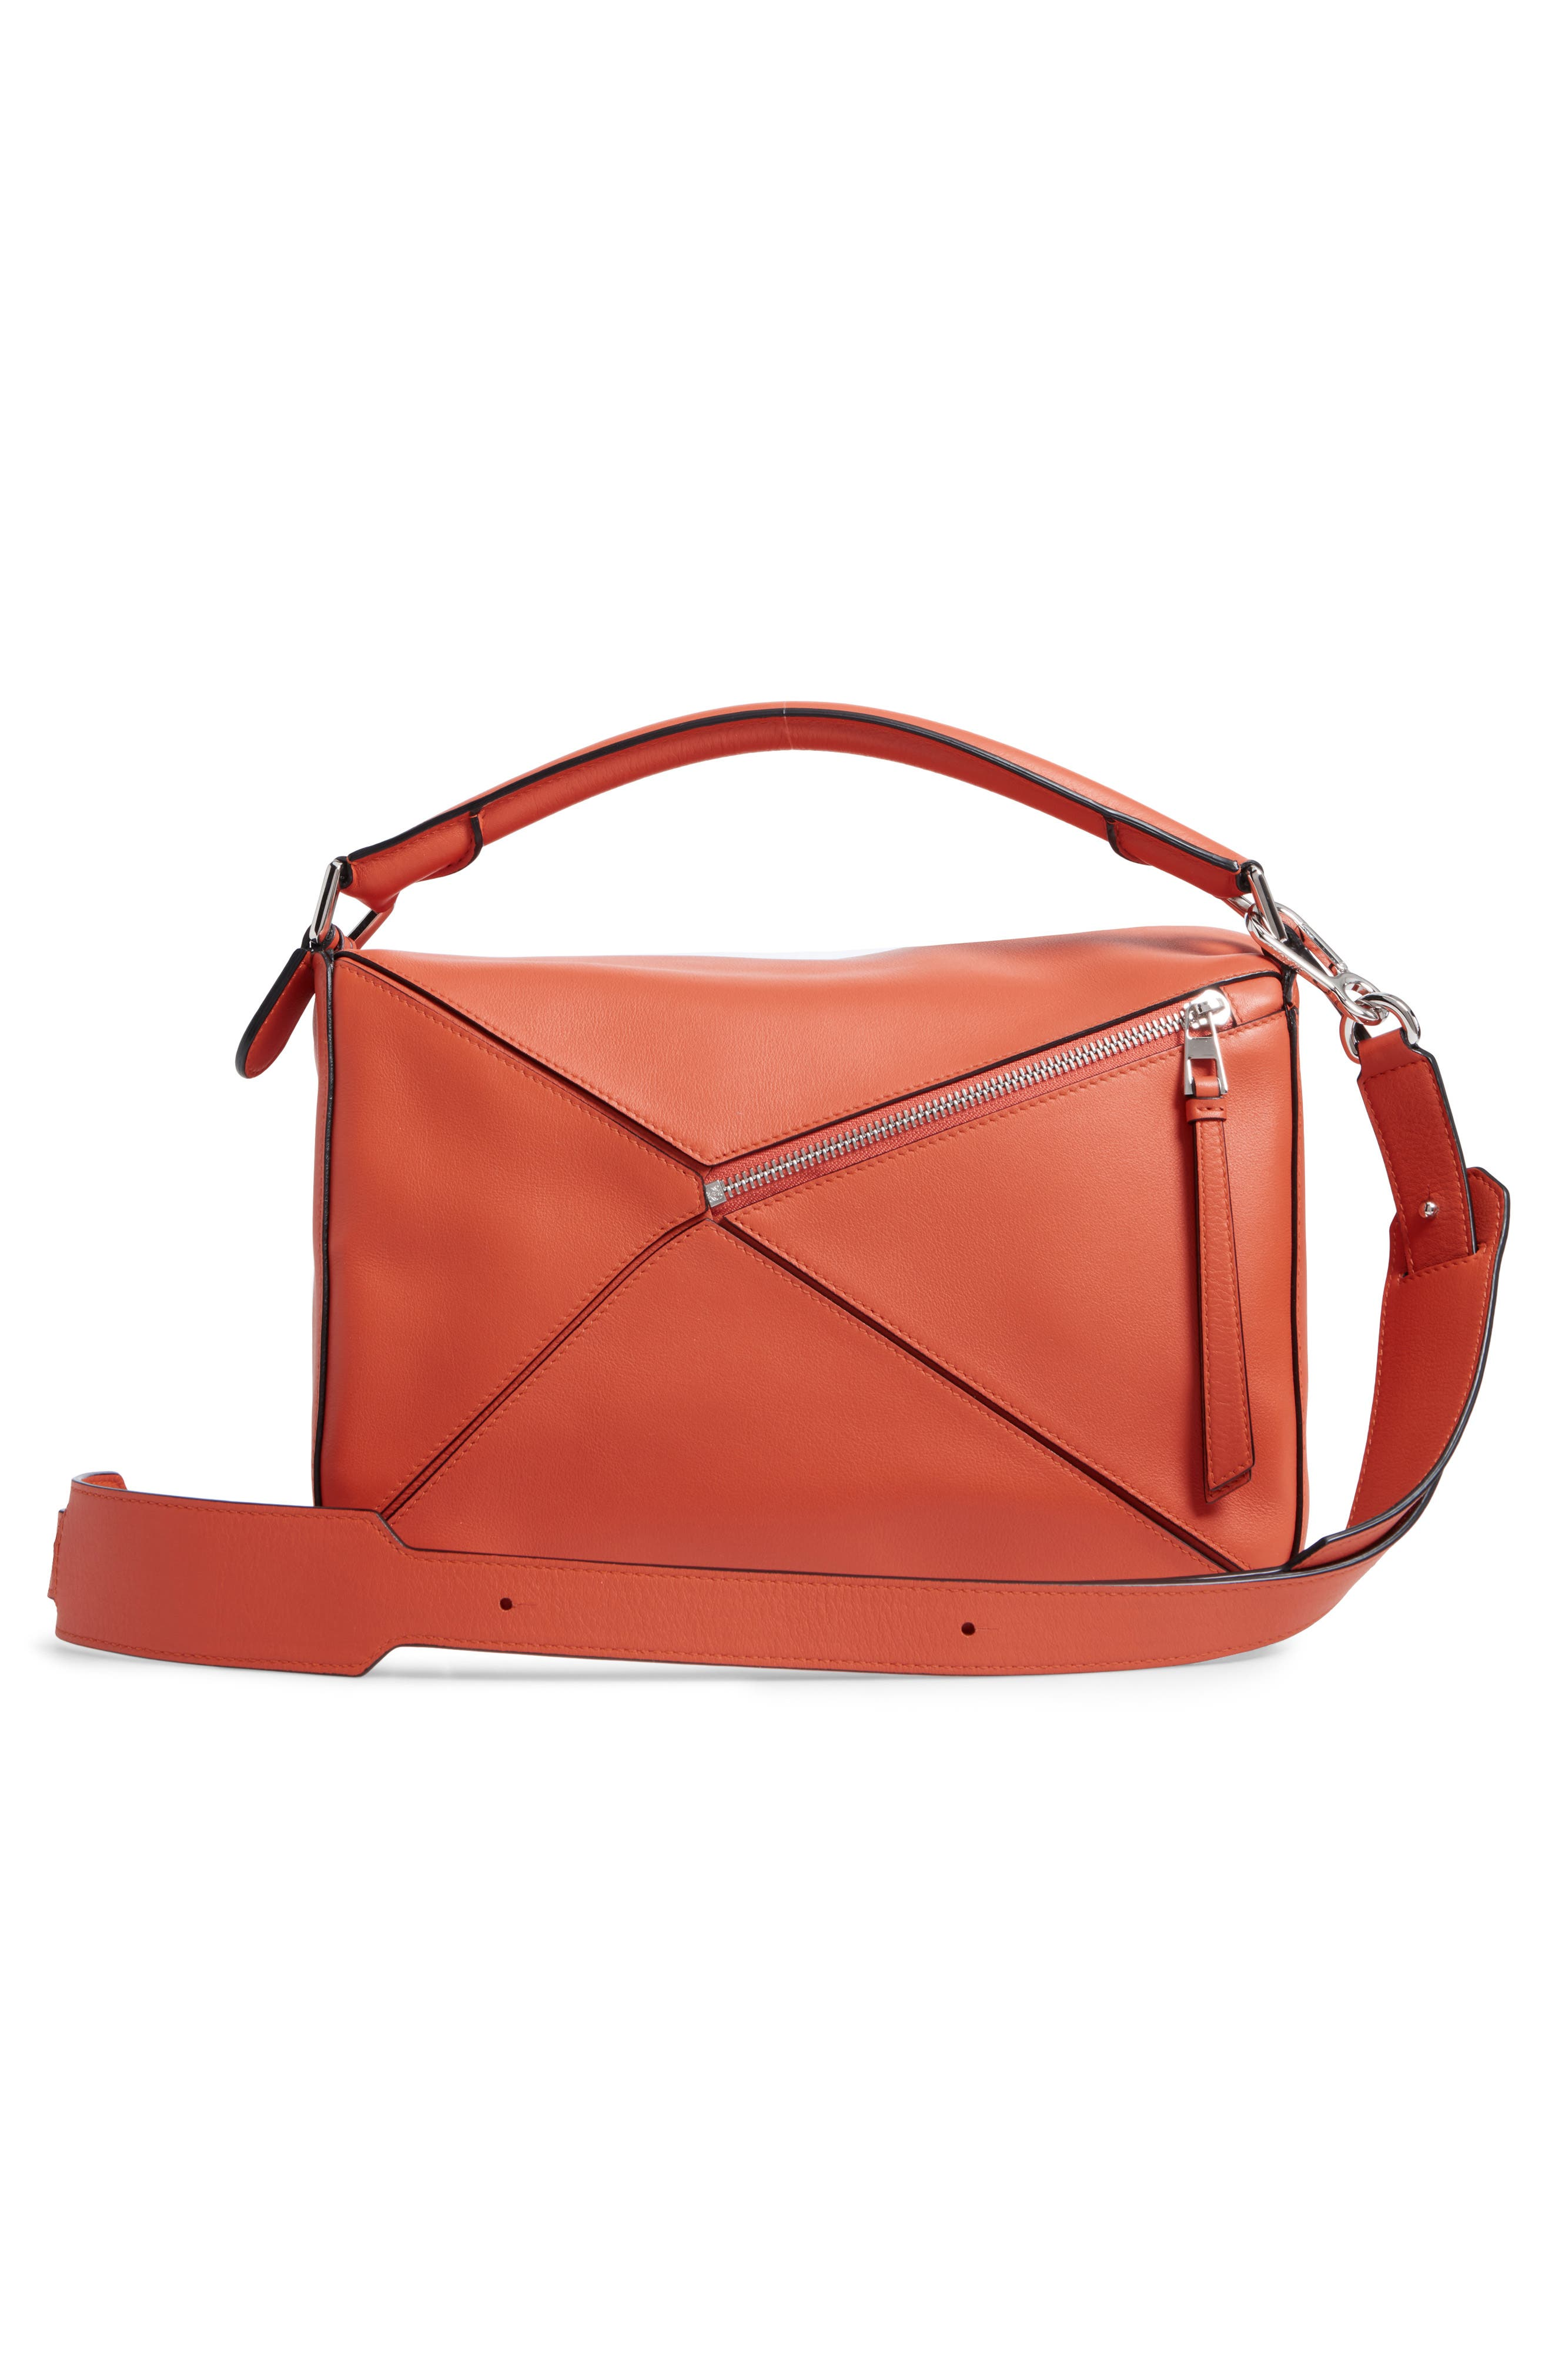 'Small Puzzle' Calfskin Leather Bag,                             Alternate thumbnail 26, color,